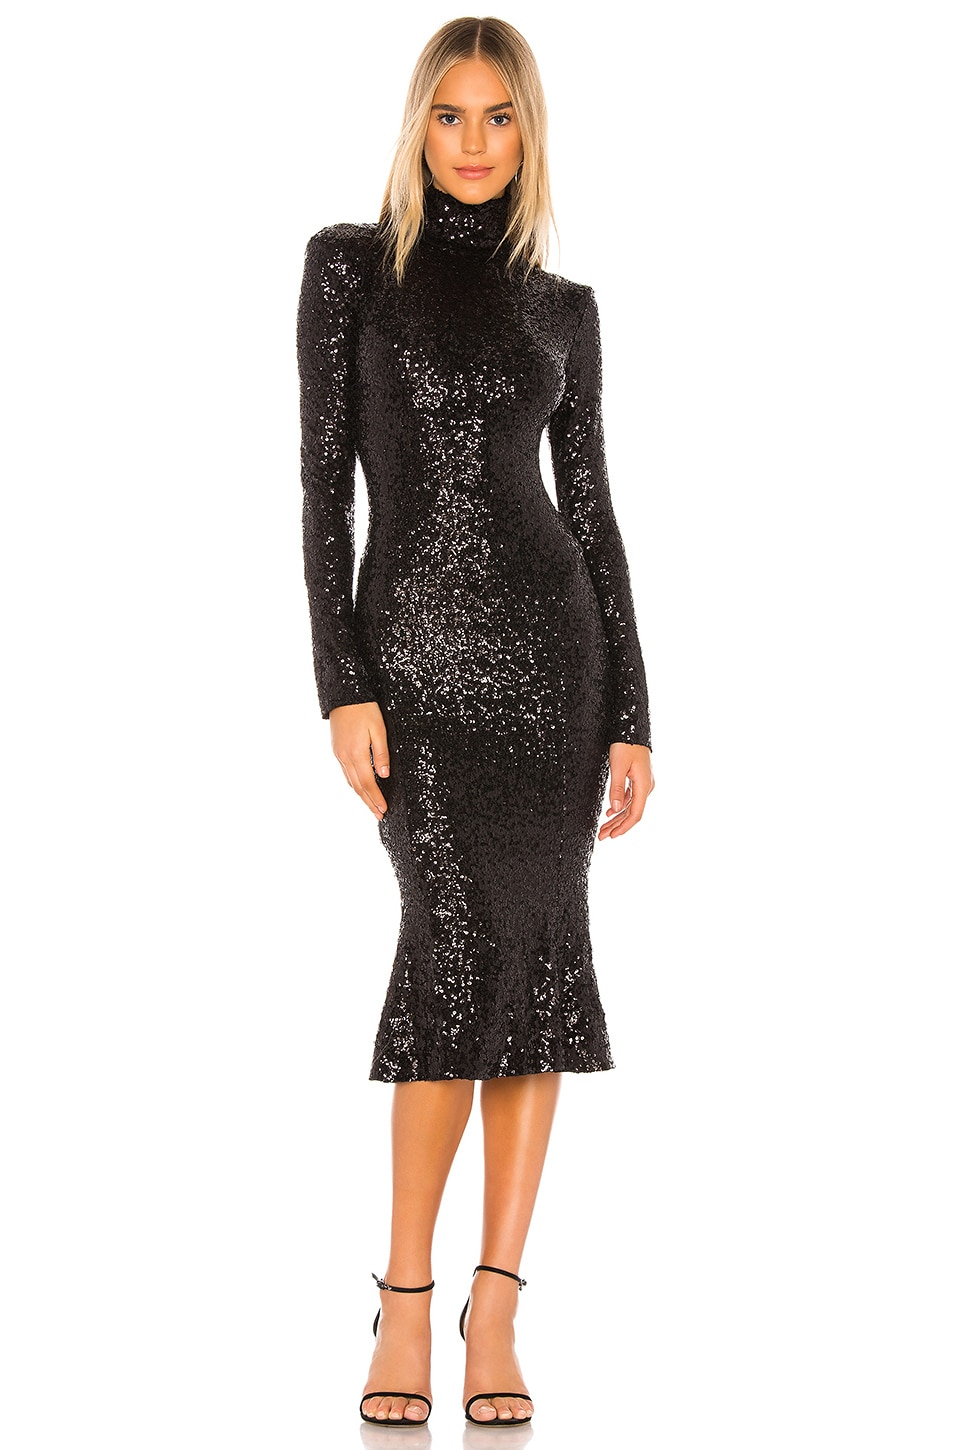 Sequin Fishtail Dress                   Norma Kamali                                                                                                                             CA$ 516.56 1